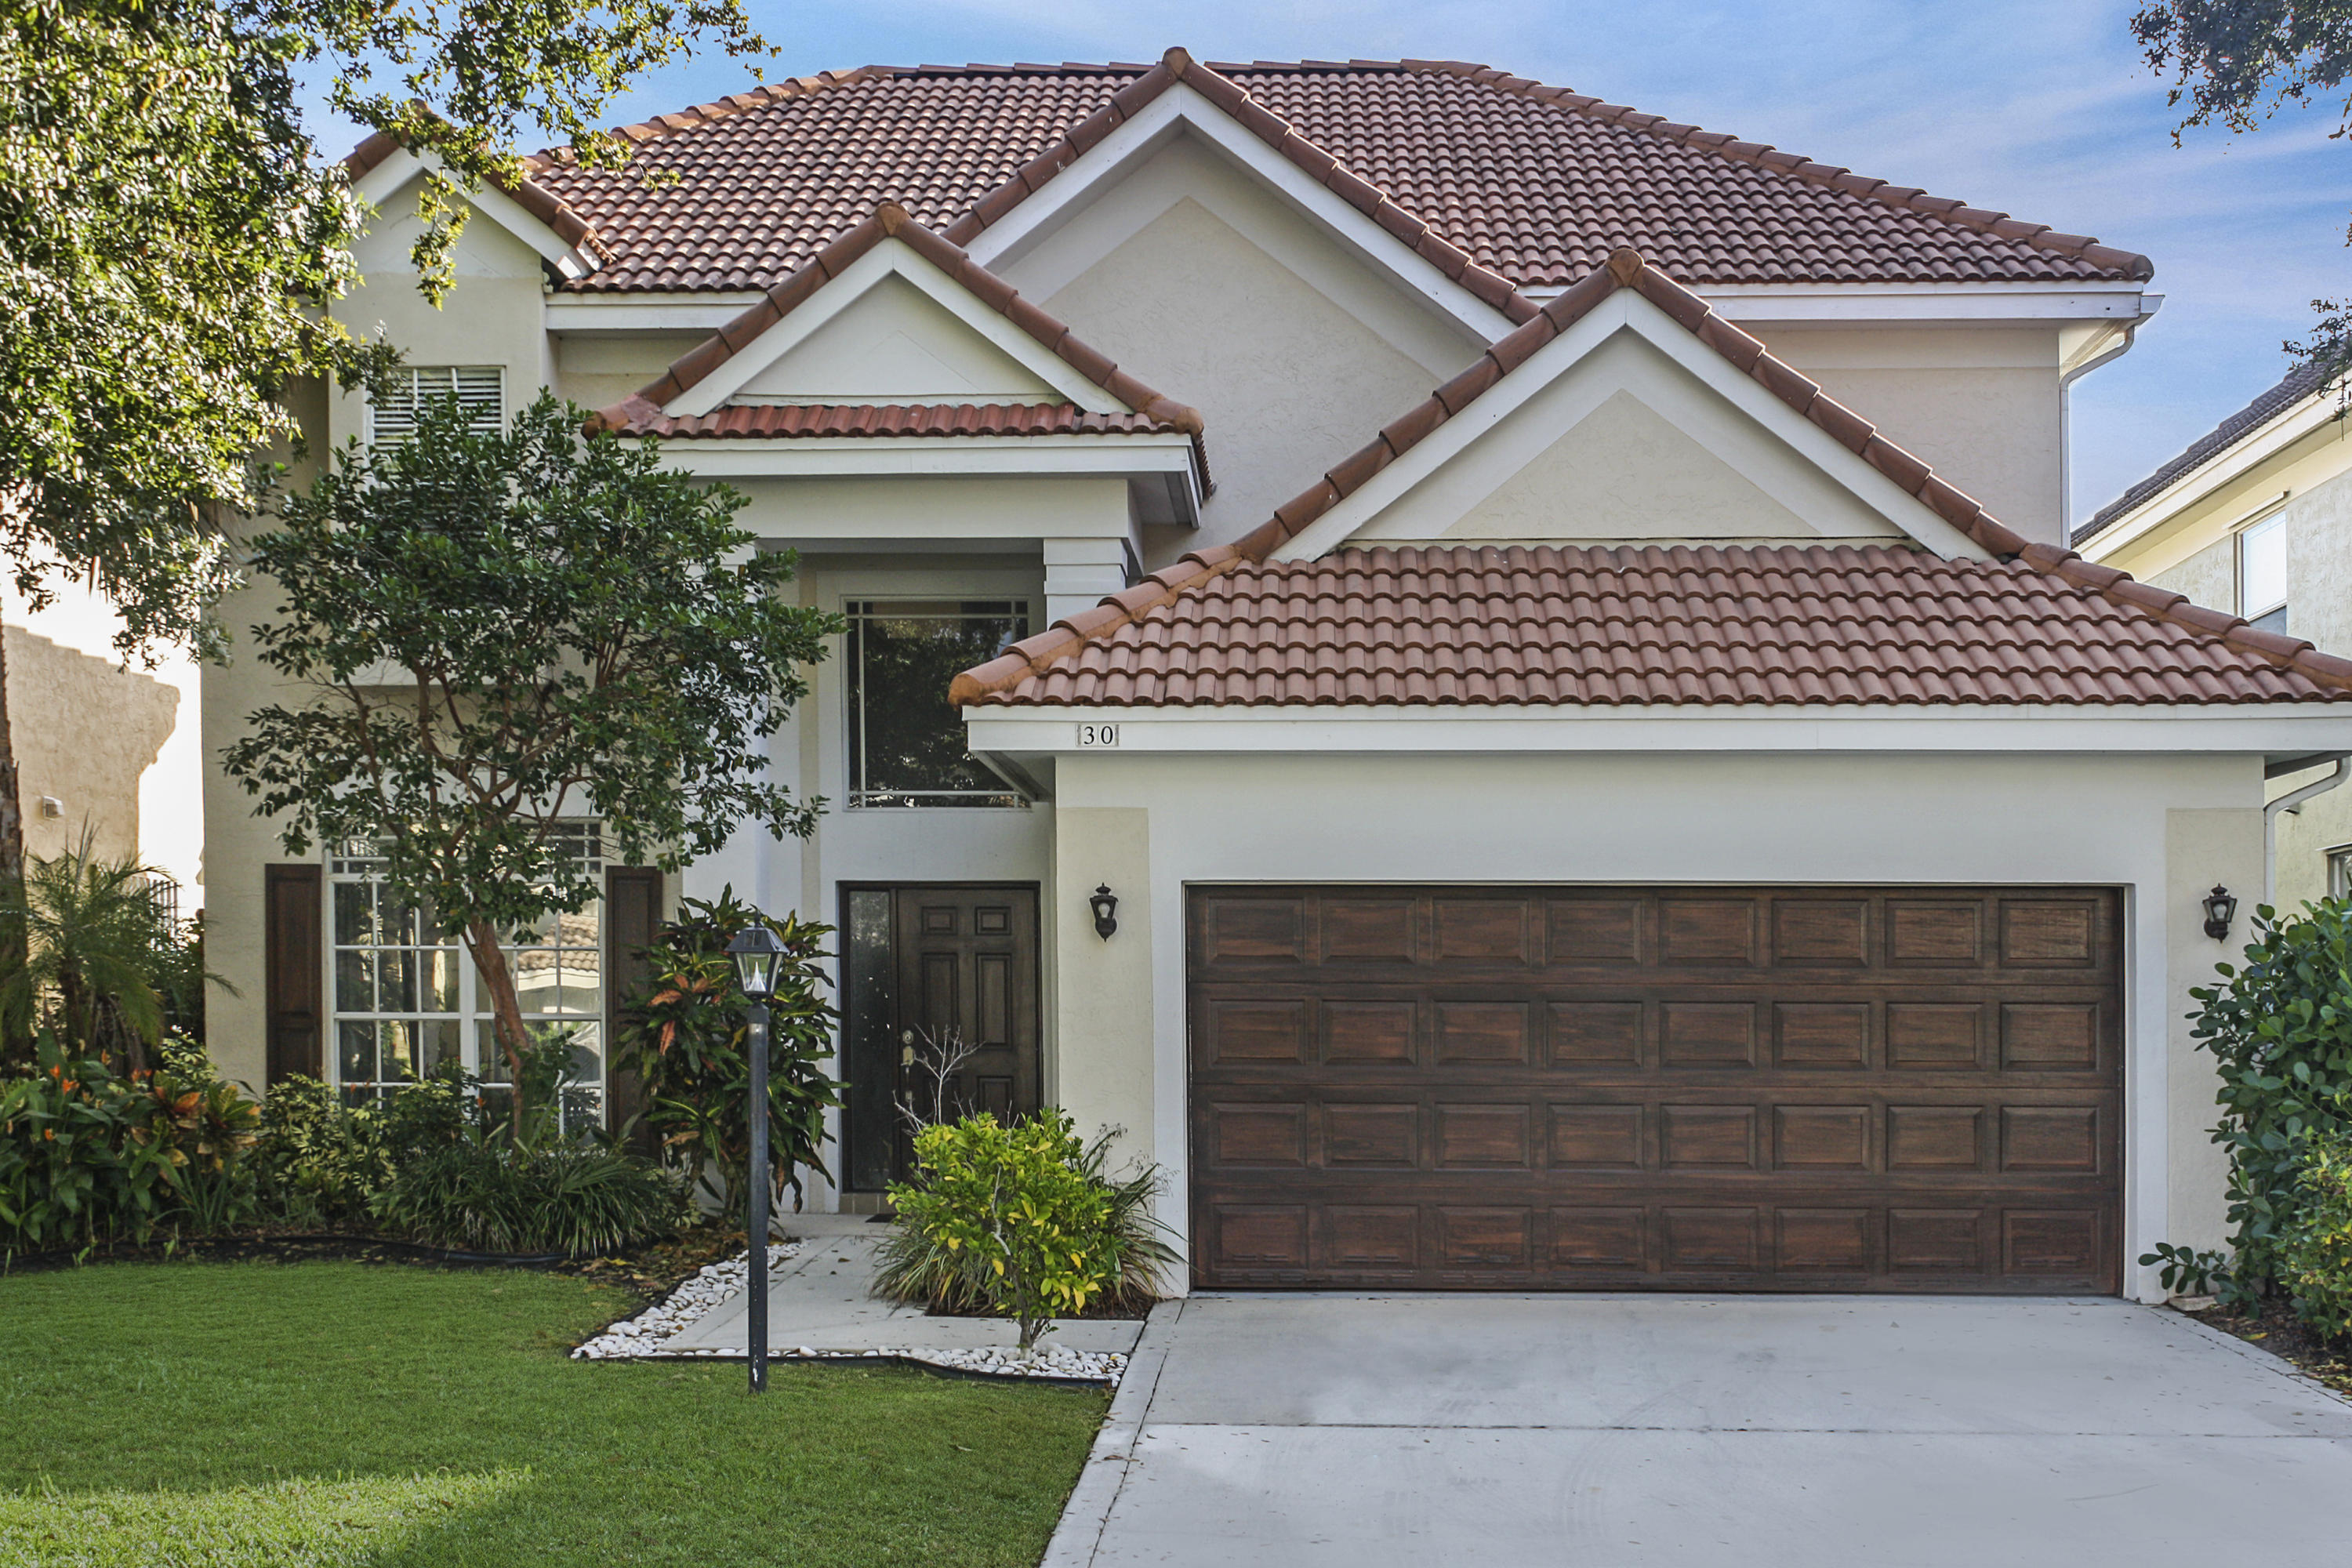 New Home for sale at 30 Princewood Lane in Palm Beach Gardens